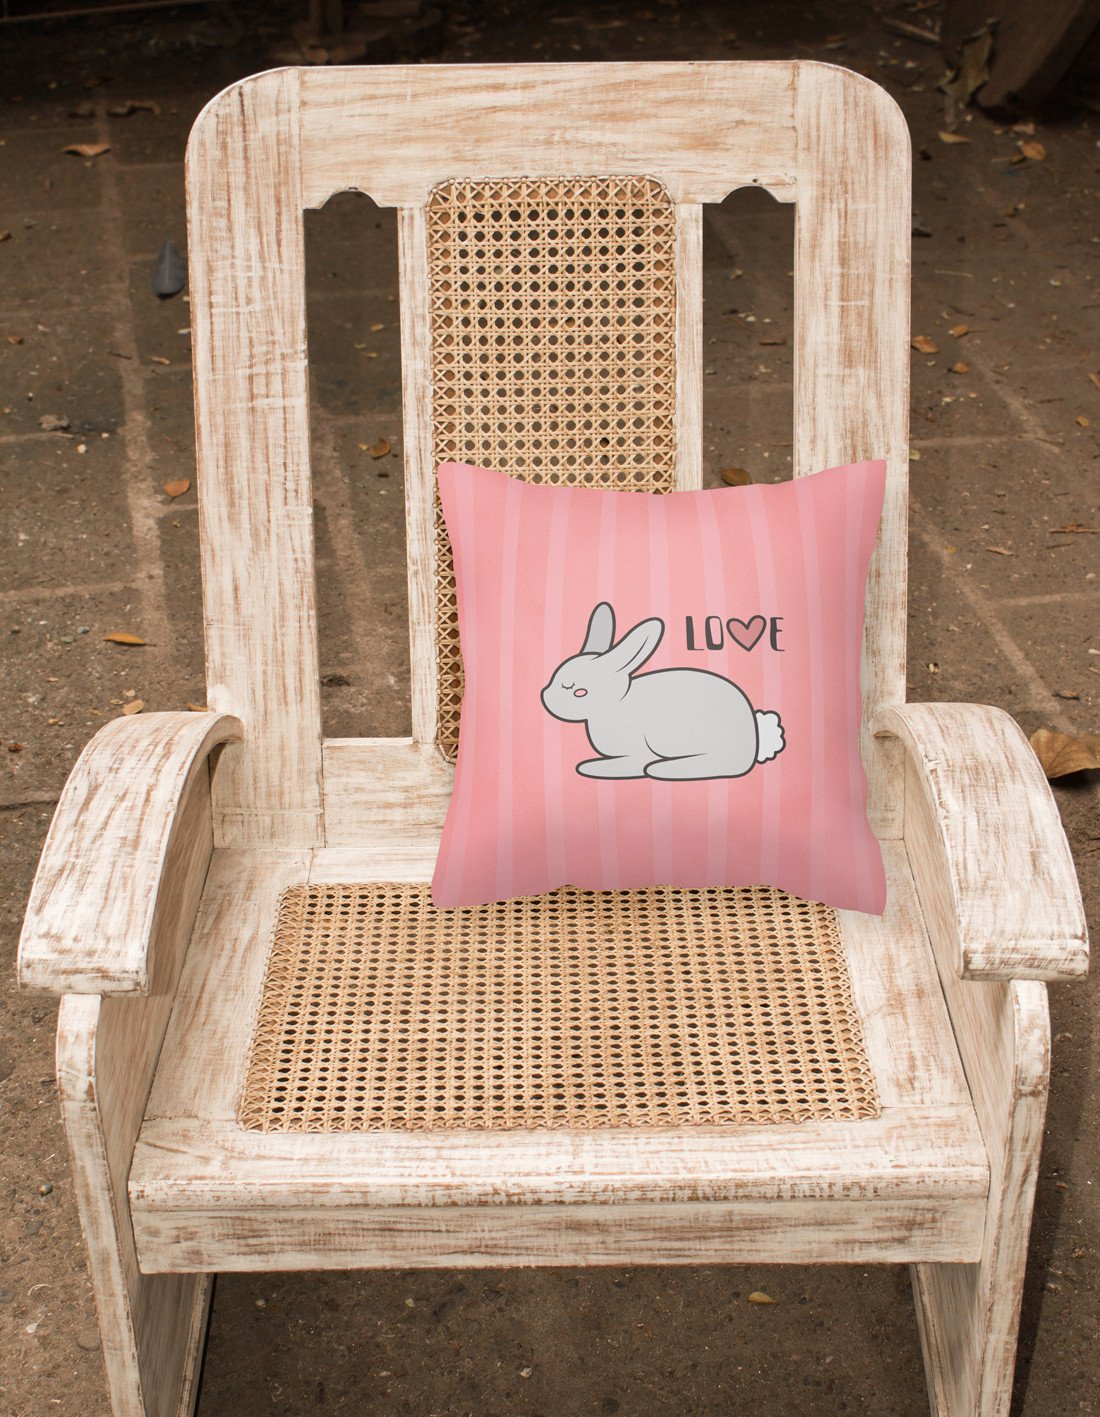 Nursery Love Bunny Rabbit Fabric Decorative Pillow BB7476PW1818 by Caroline's Treasures